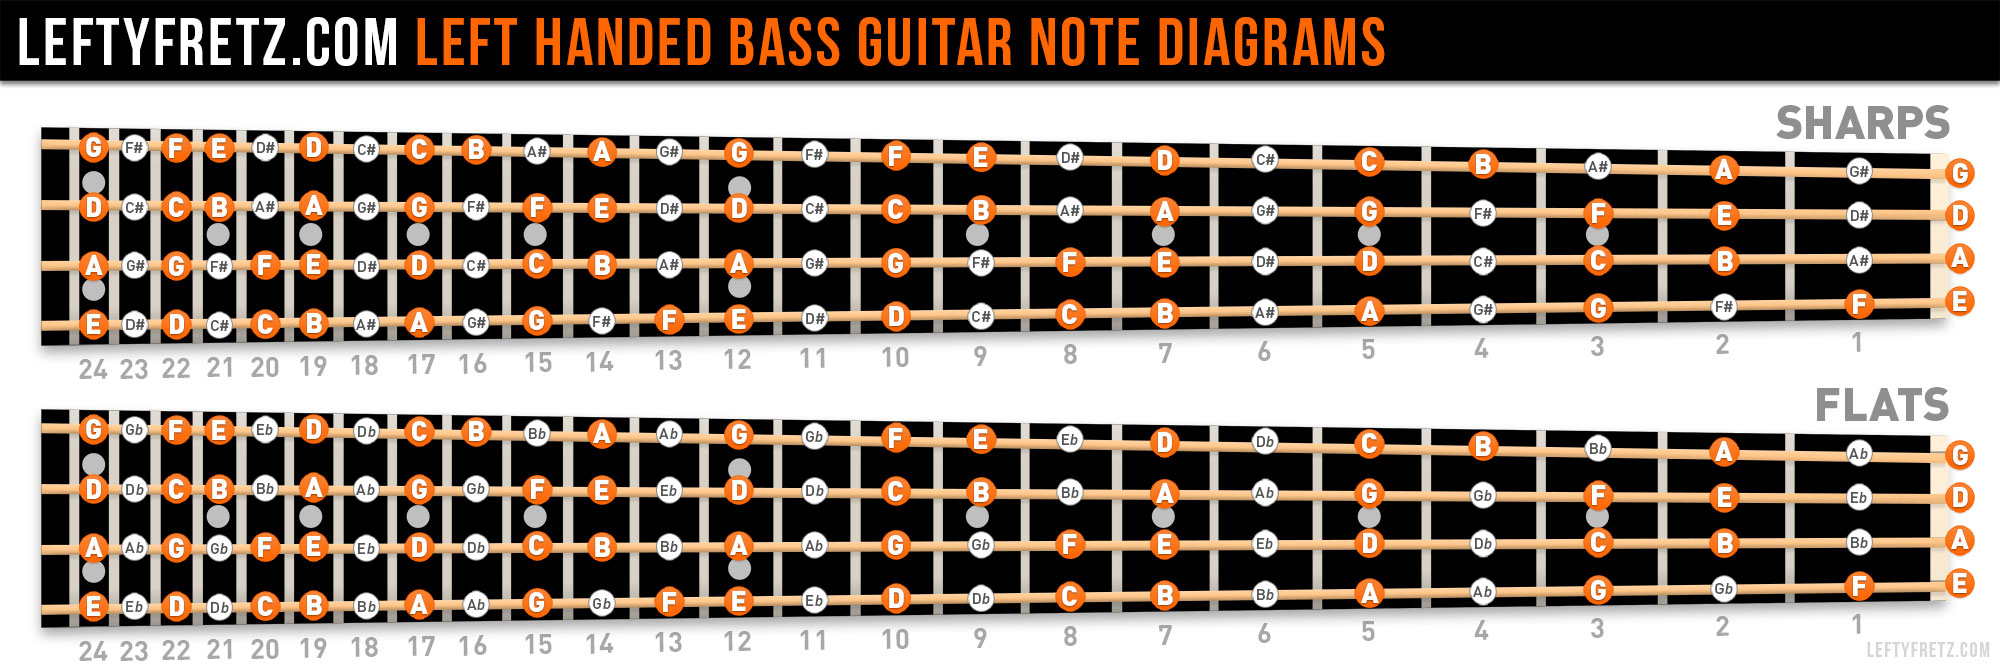 Left Handed Bass Fretboard Notes Diagram